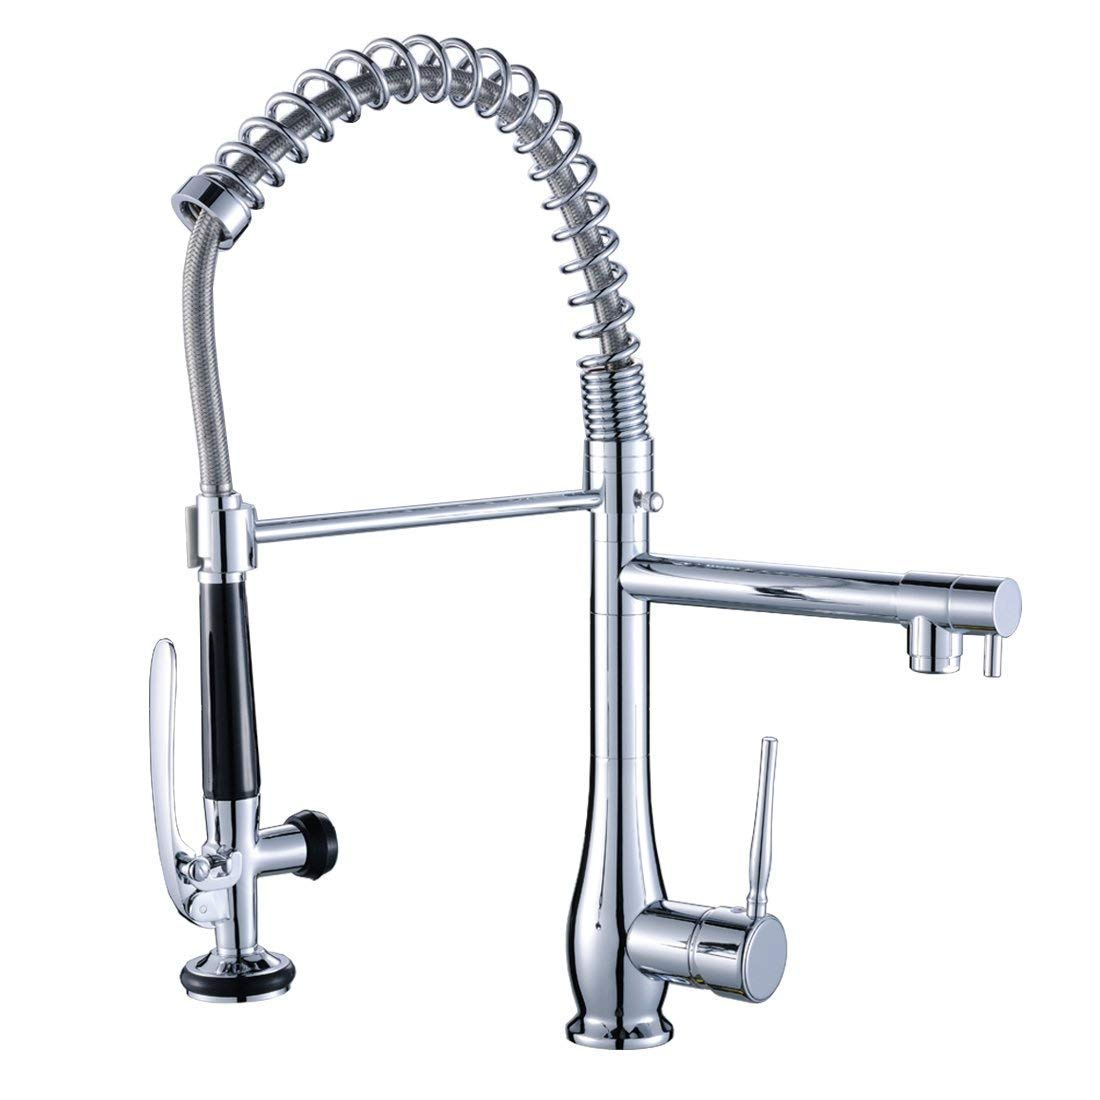 FLG Spring Single Handle Pull Down Kitchen Sink Faucet with Sprayer, Commercial Pre Rinse Faucet, Chrome